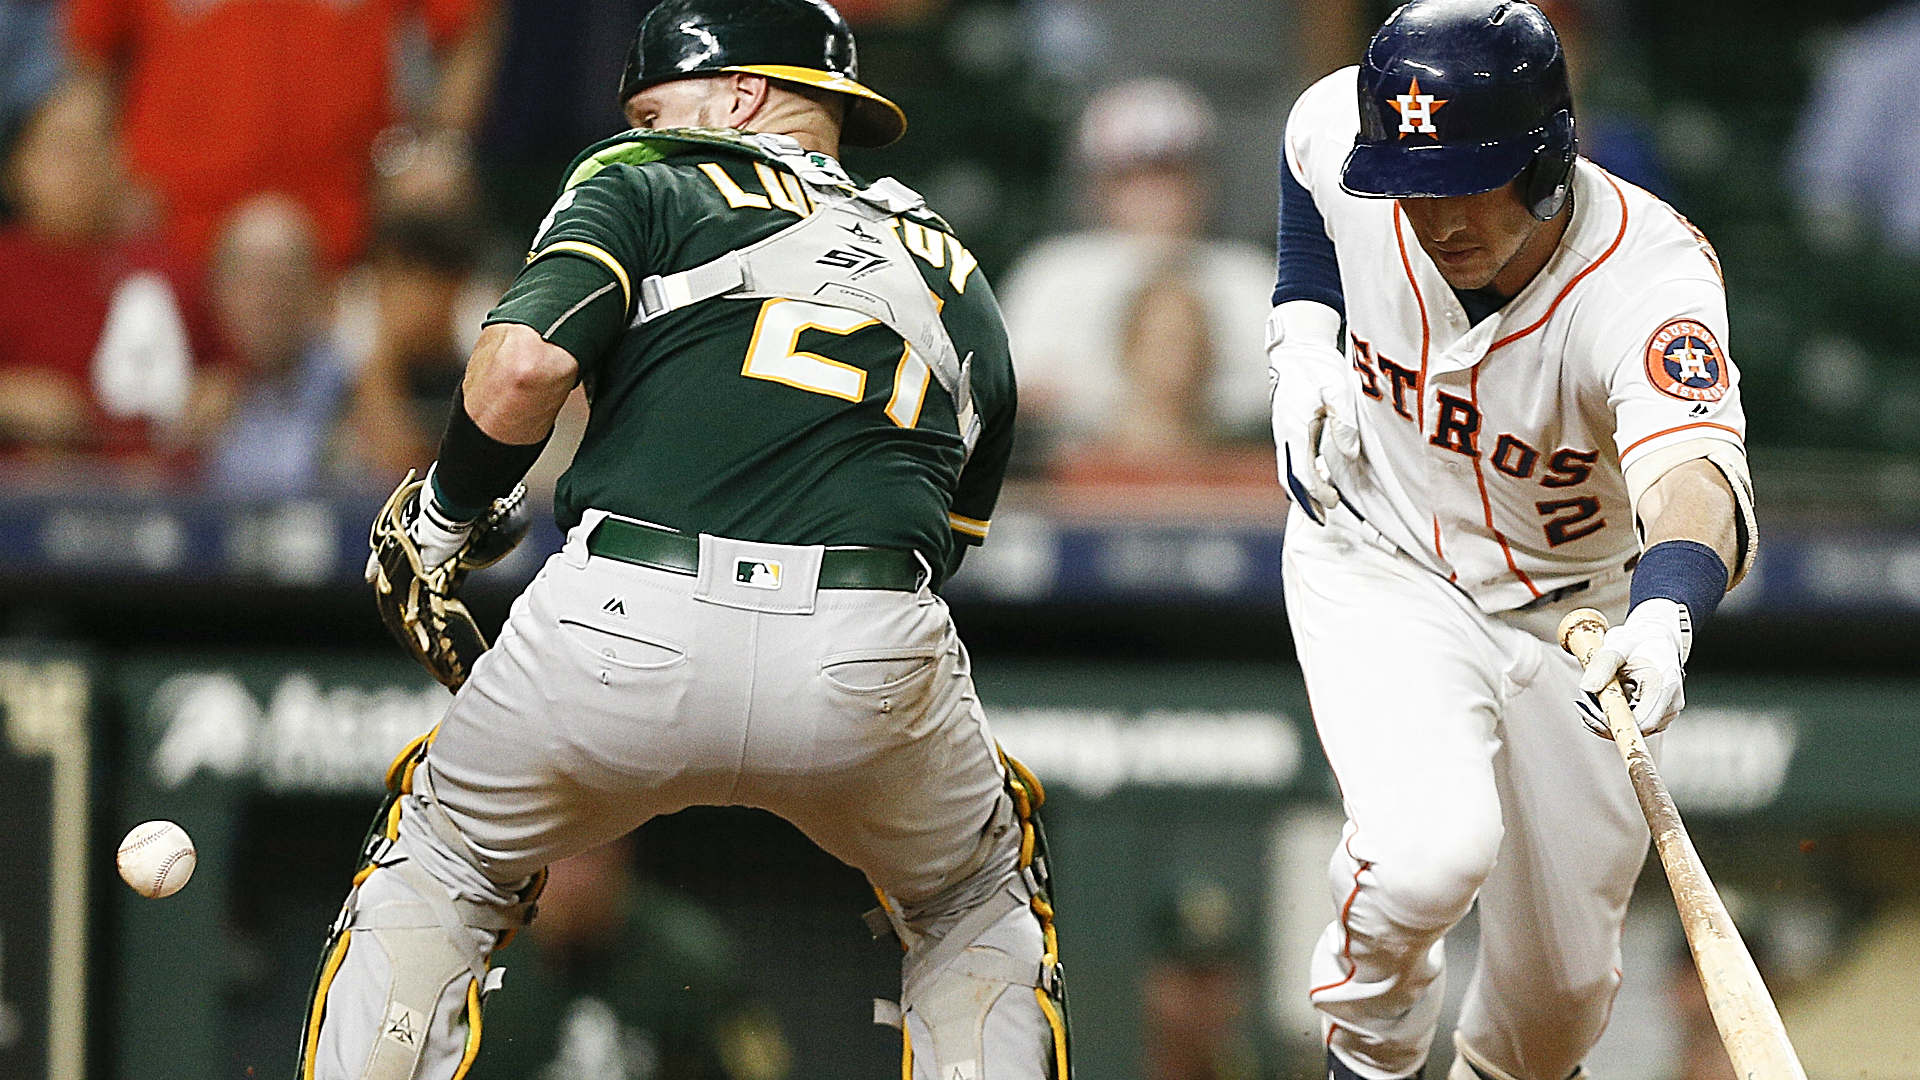 Astros Win on One of the Weirdest Walk-Offs in Baseball History